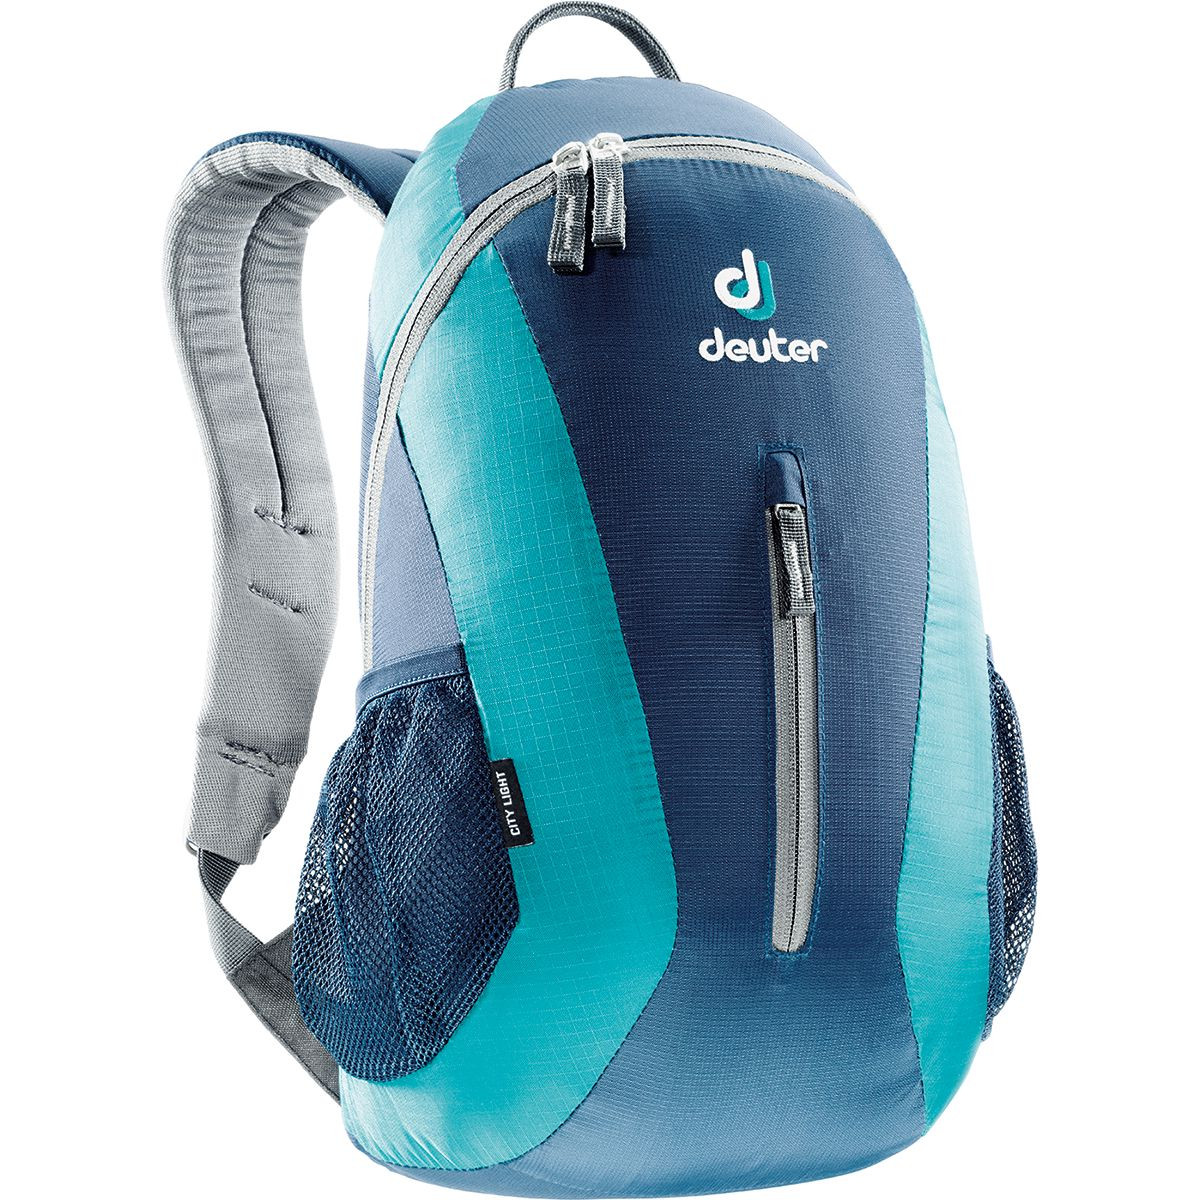 Рюкзак Deuter City Light - Midnight-petrol (80154 3351)